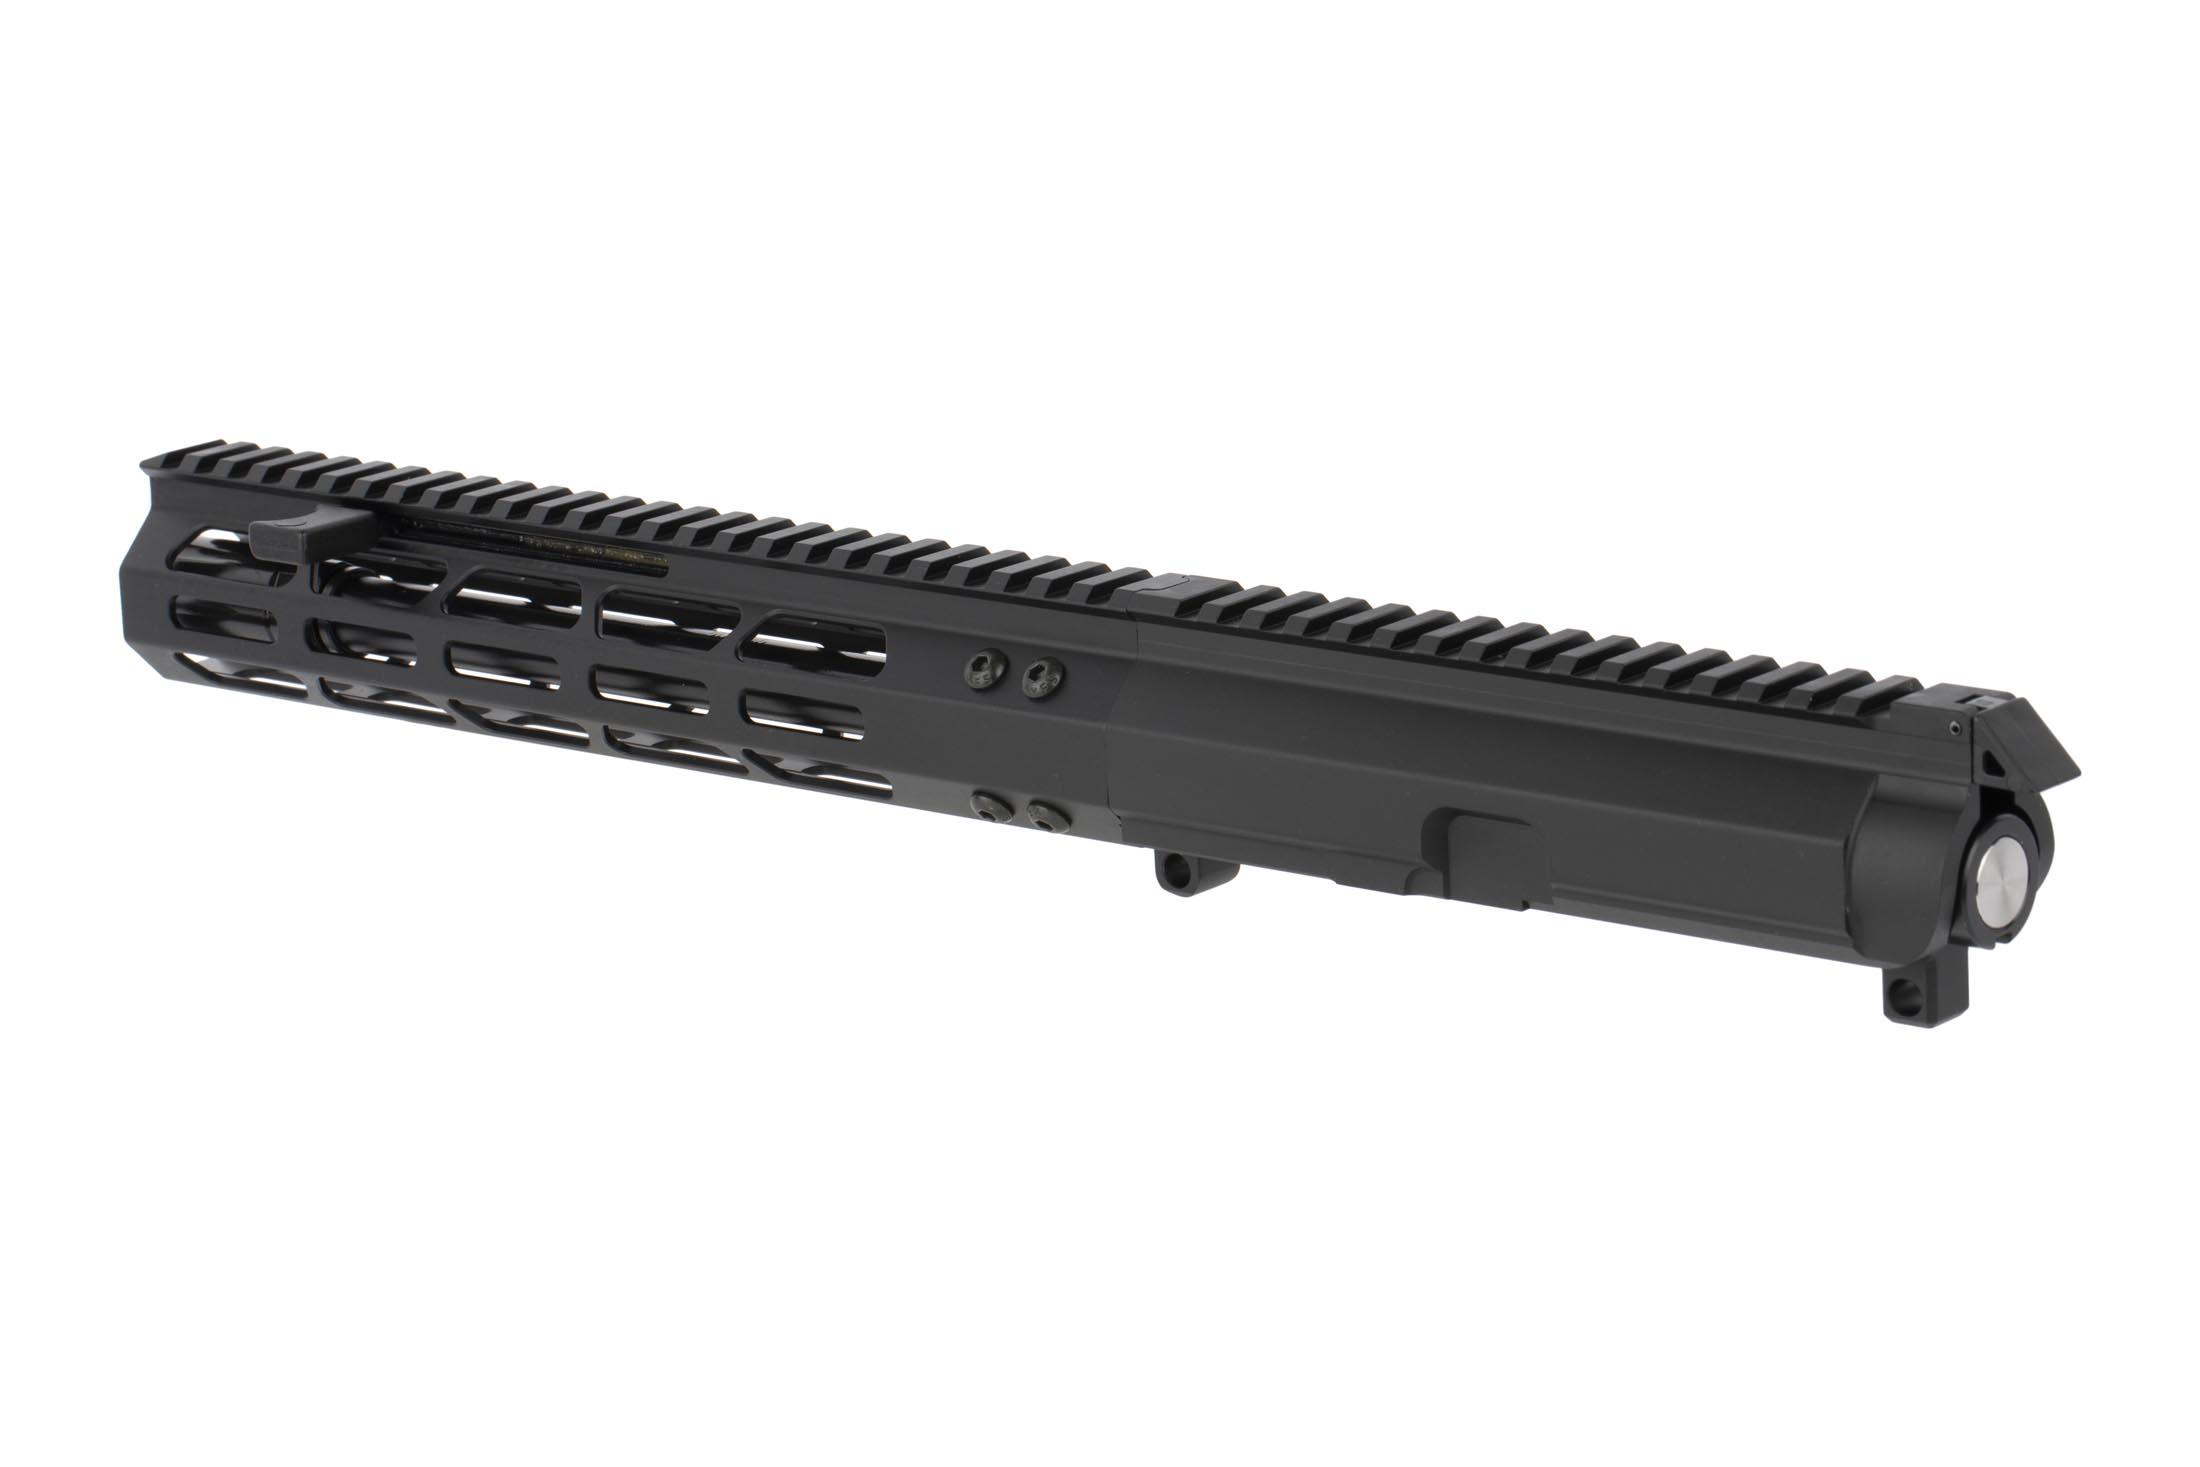 Foxtrot Mike Products 9.25 Complete 9mm Colt Style Upper with 10in M-LOK rail features a swappable forward charging handle